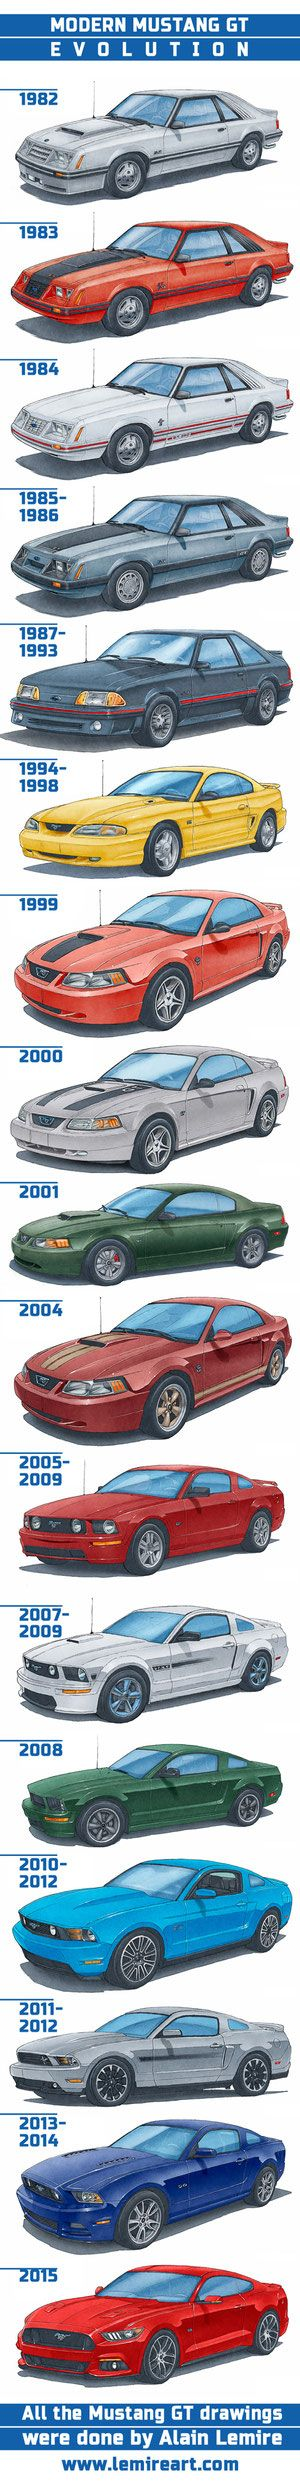 Modern Mustang GT Evolution from 1982 to 2017. Illustration by Alain Lemire from Lemireart.com